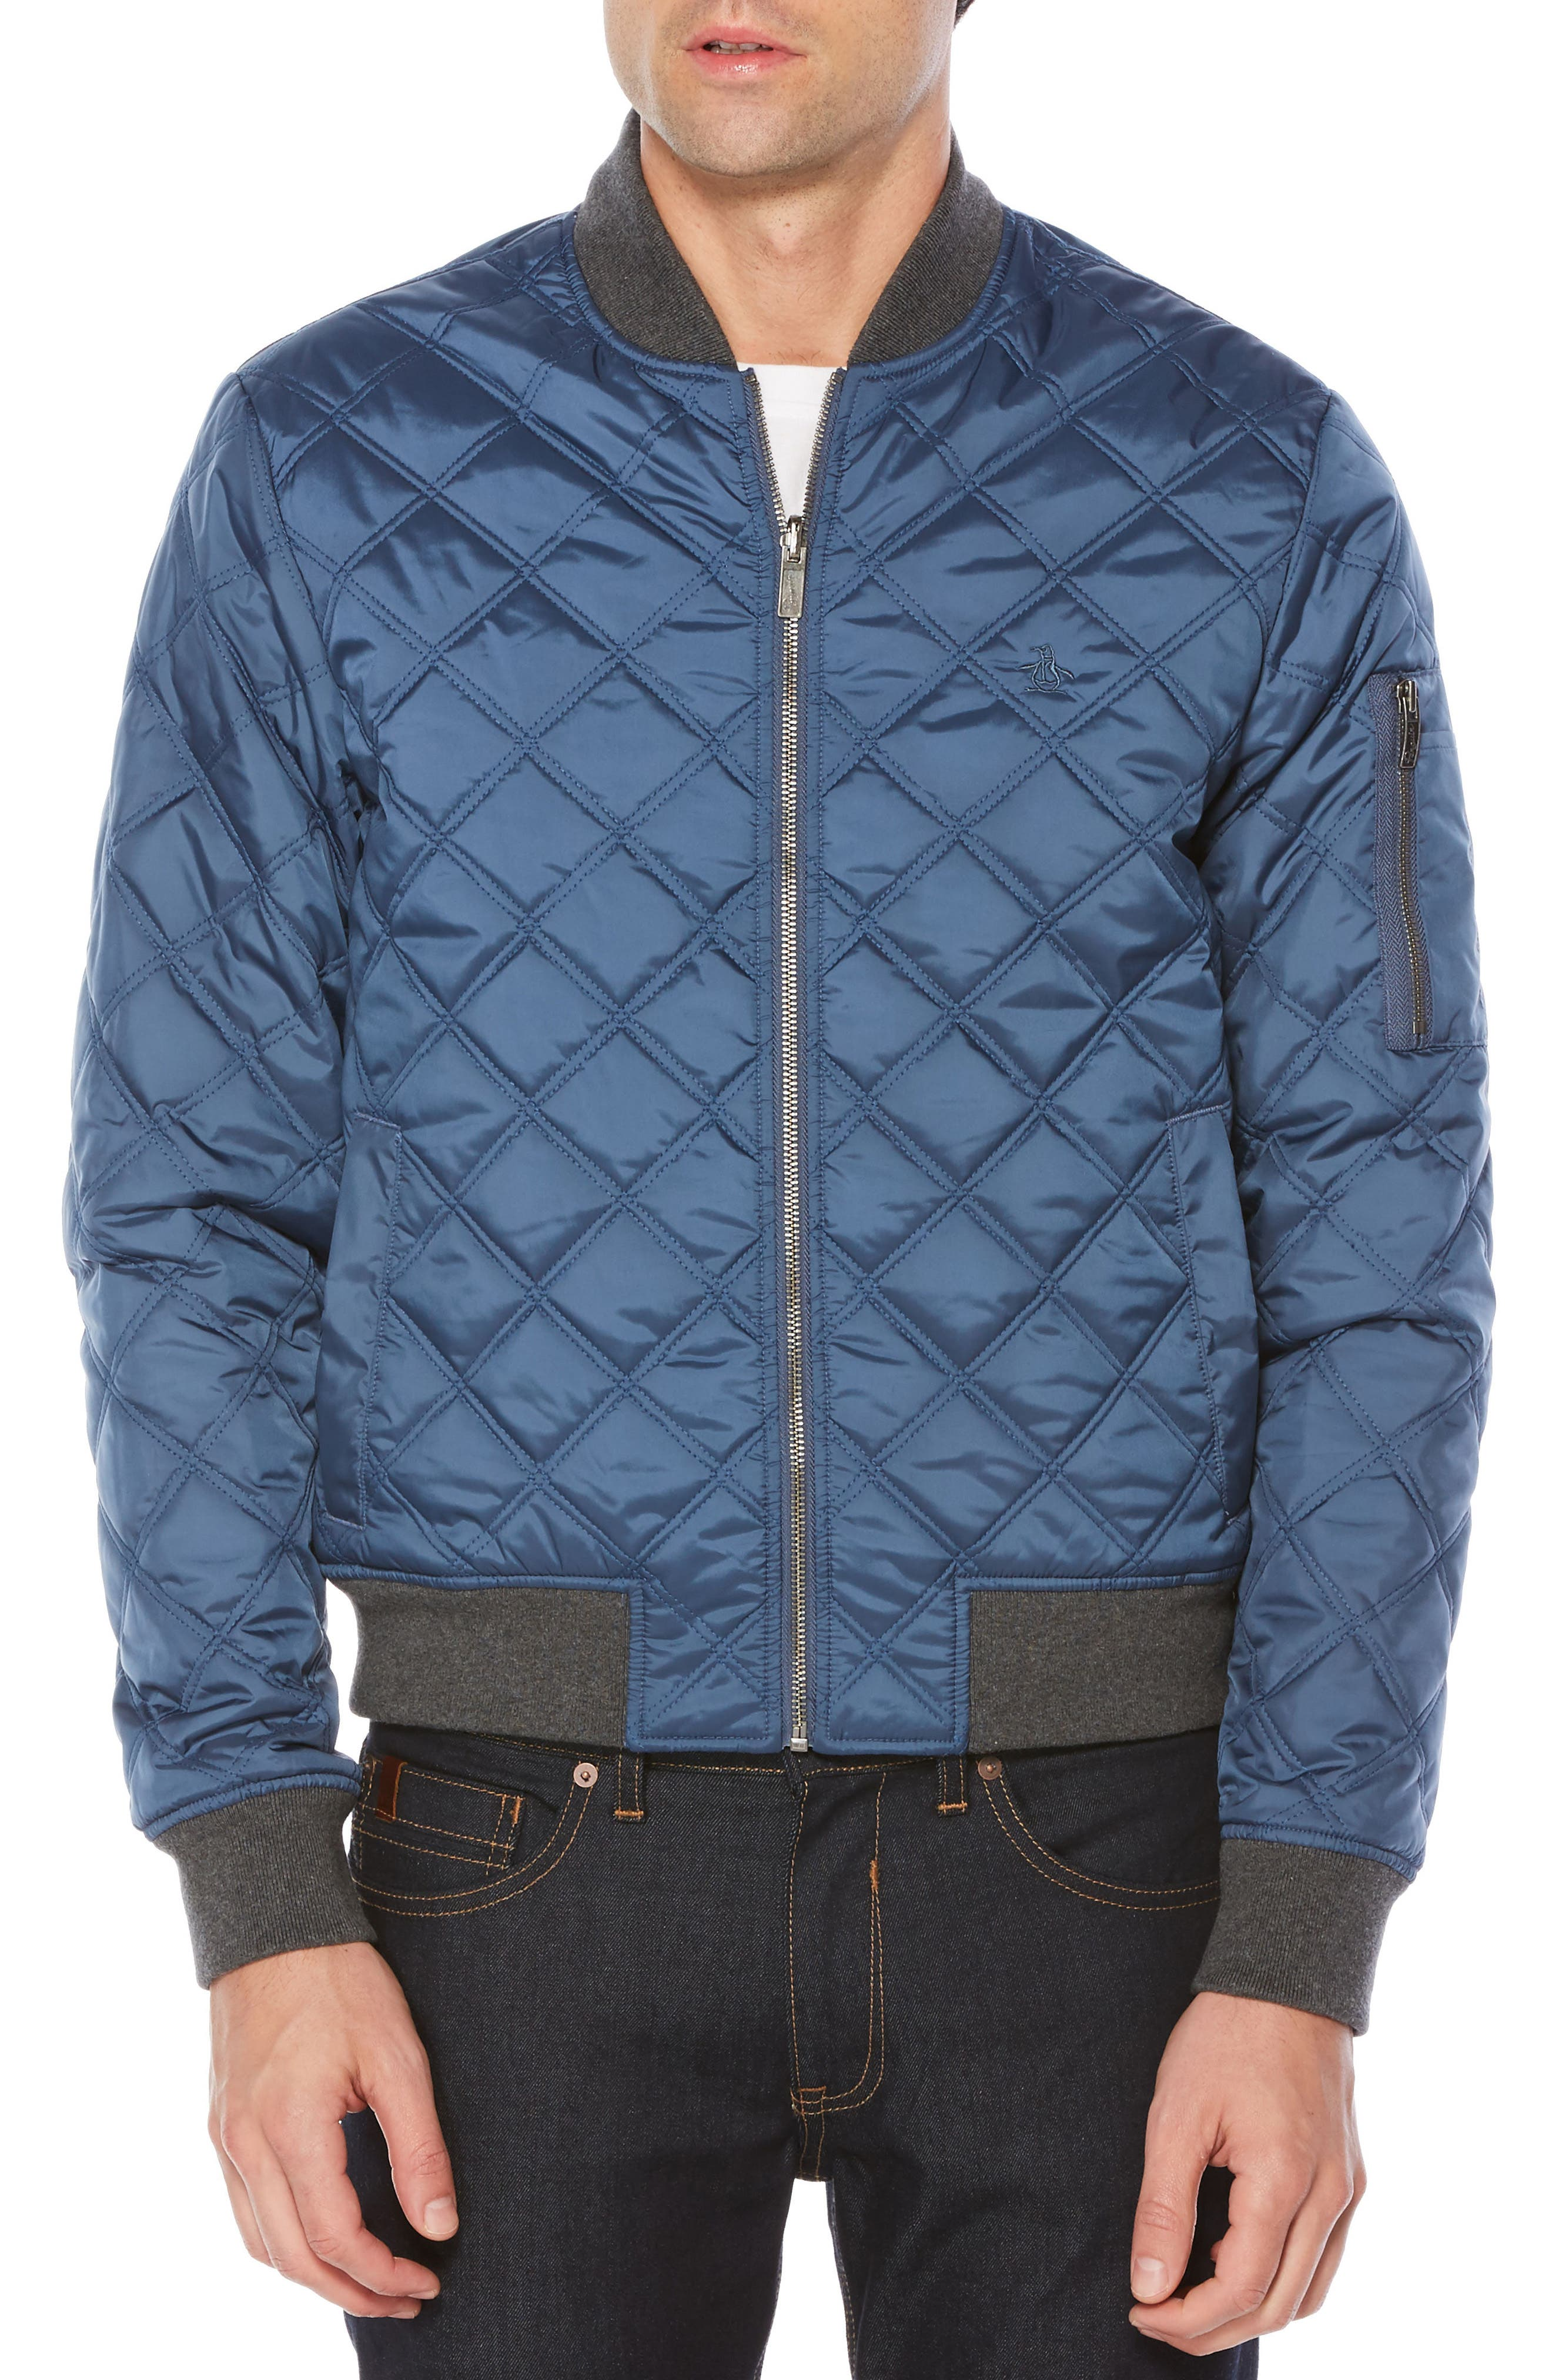 Main Image - Original Penguin Reversible Quilted Bomber